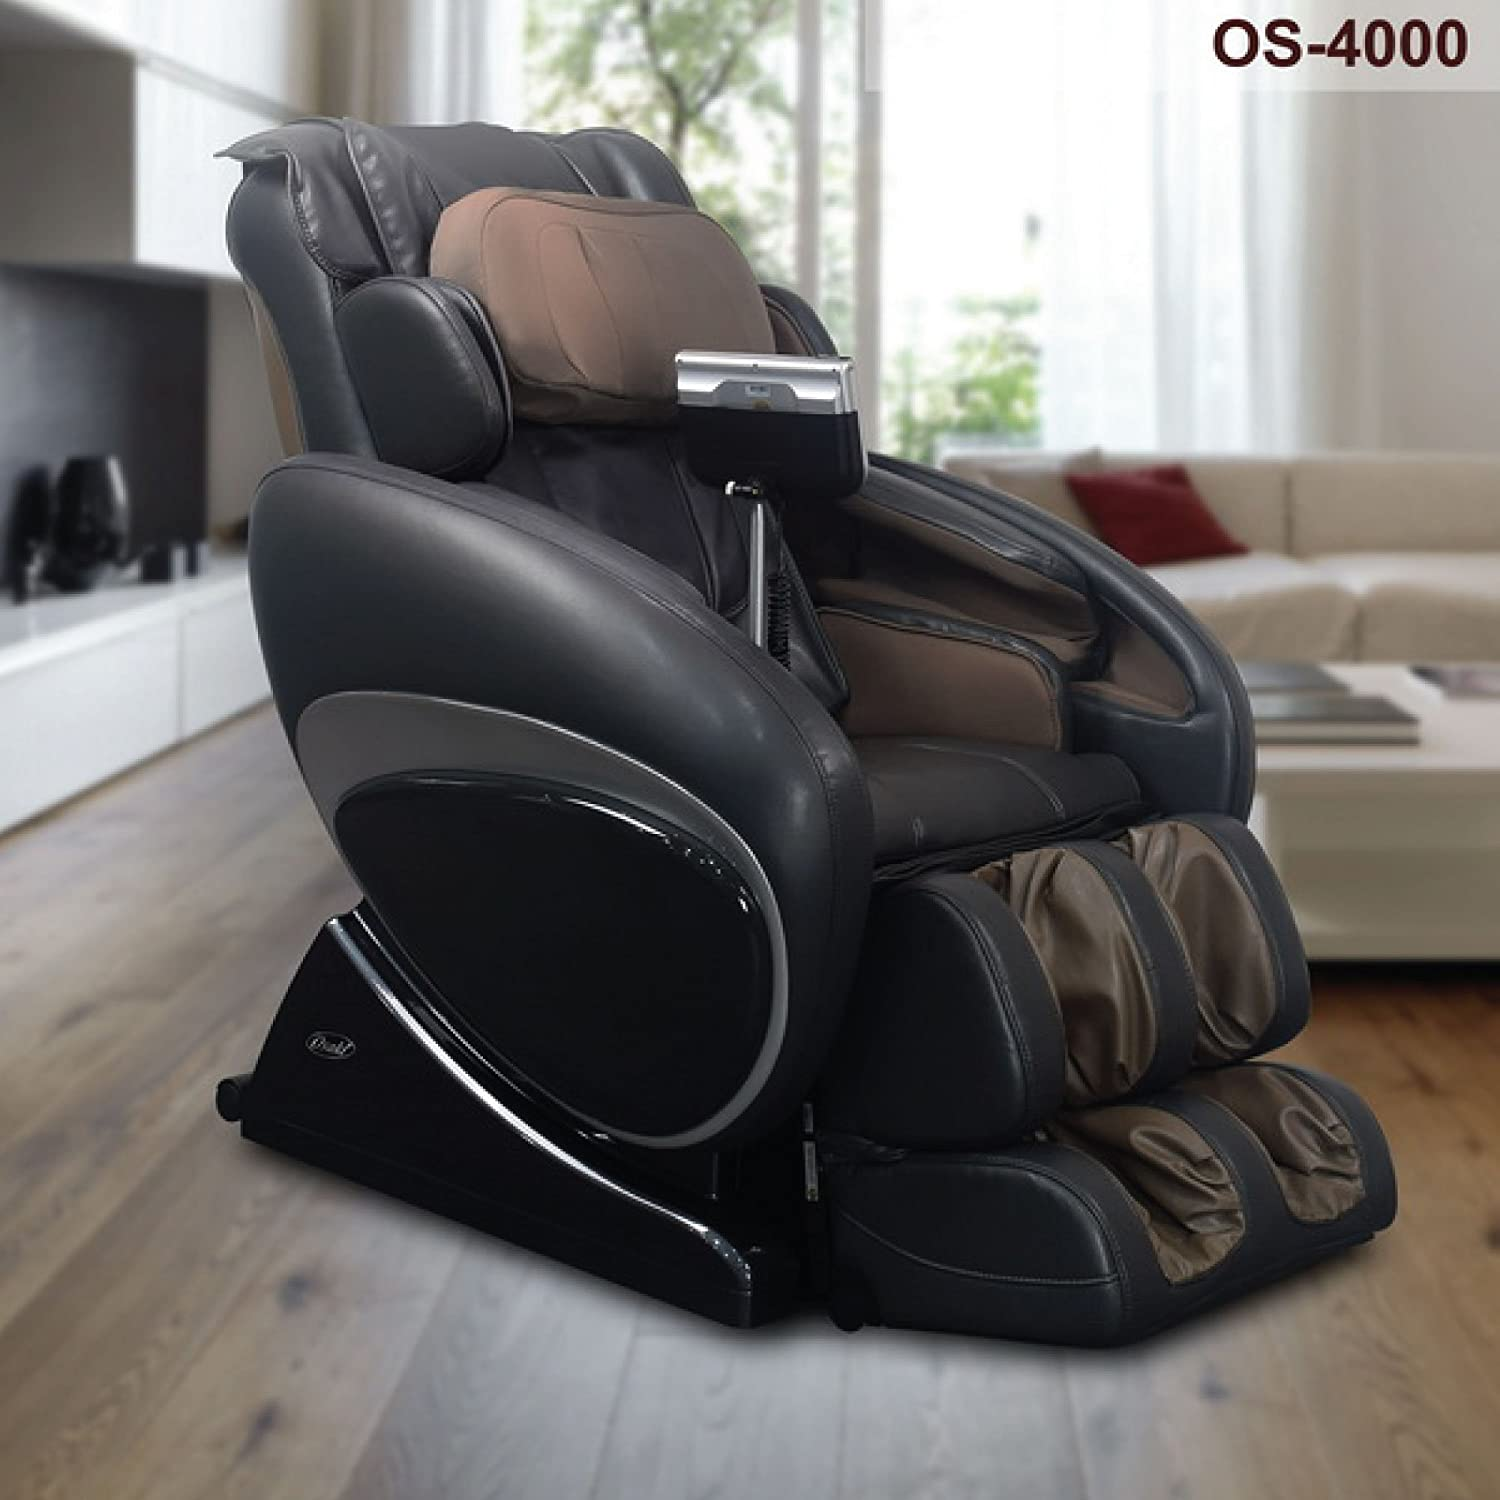 Amazon.com: OSAKI OS 4000 Zero Gravity Massage Chair, Charcoal: Kitchen U0026  Dining